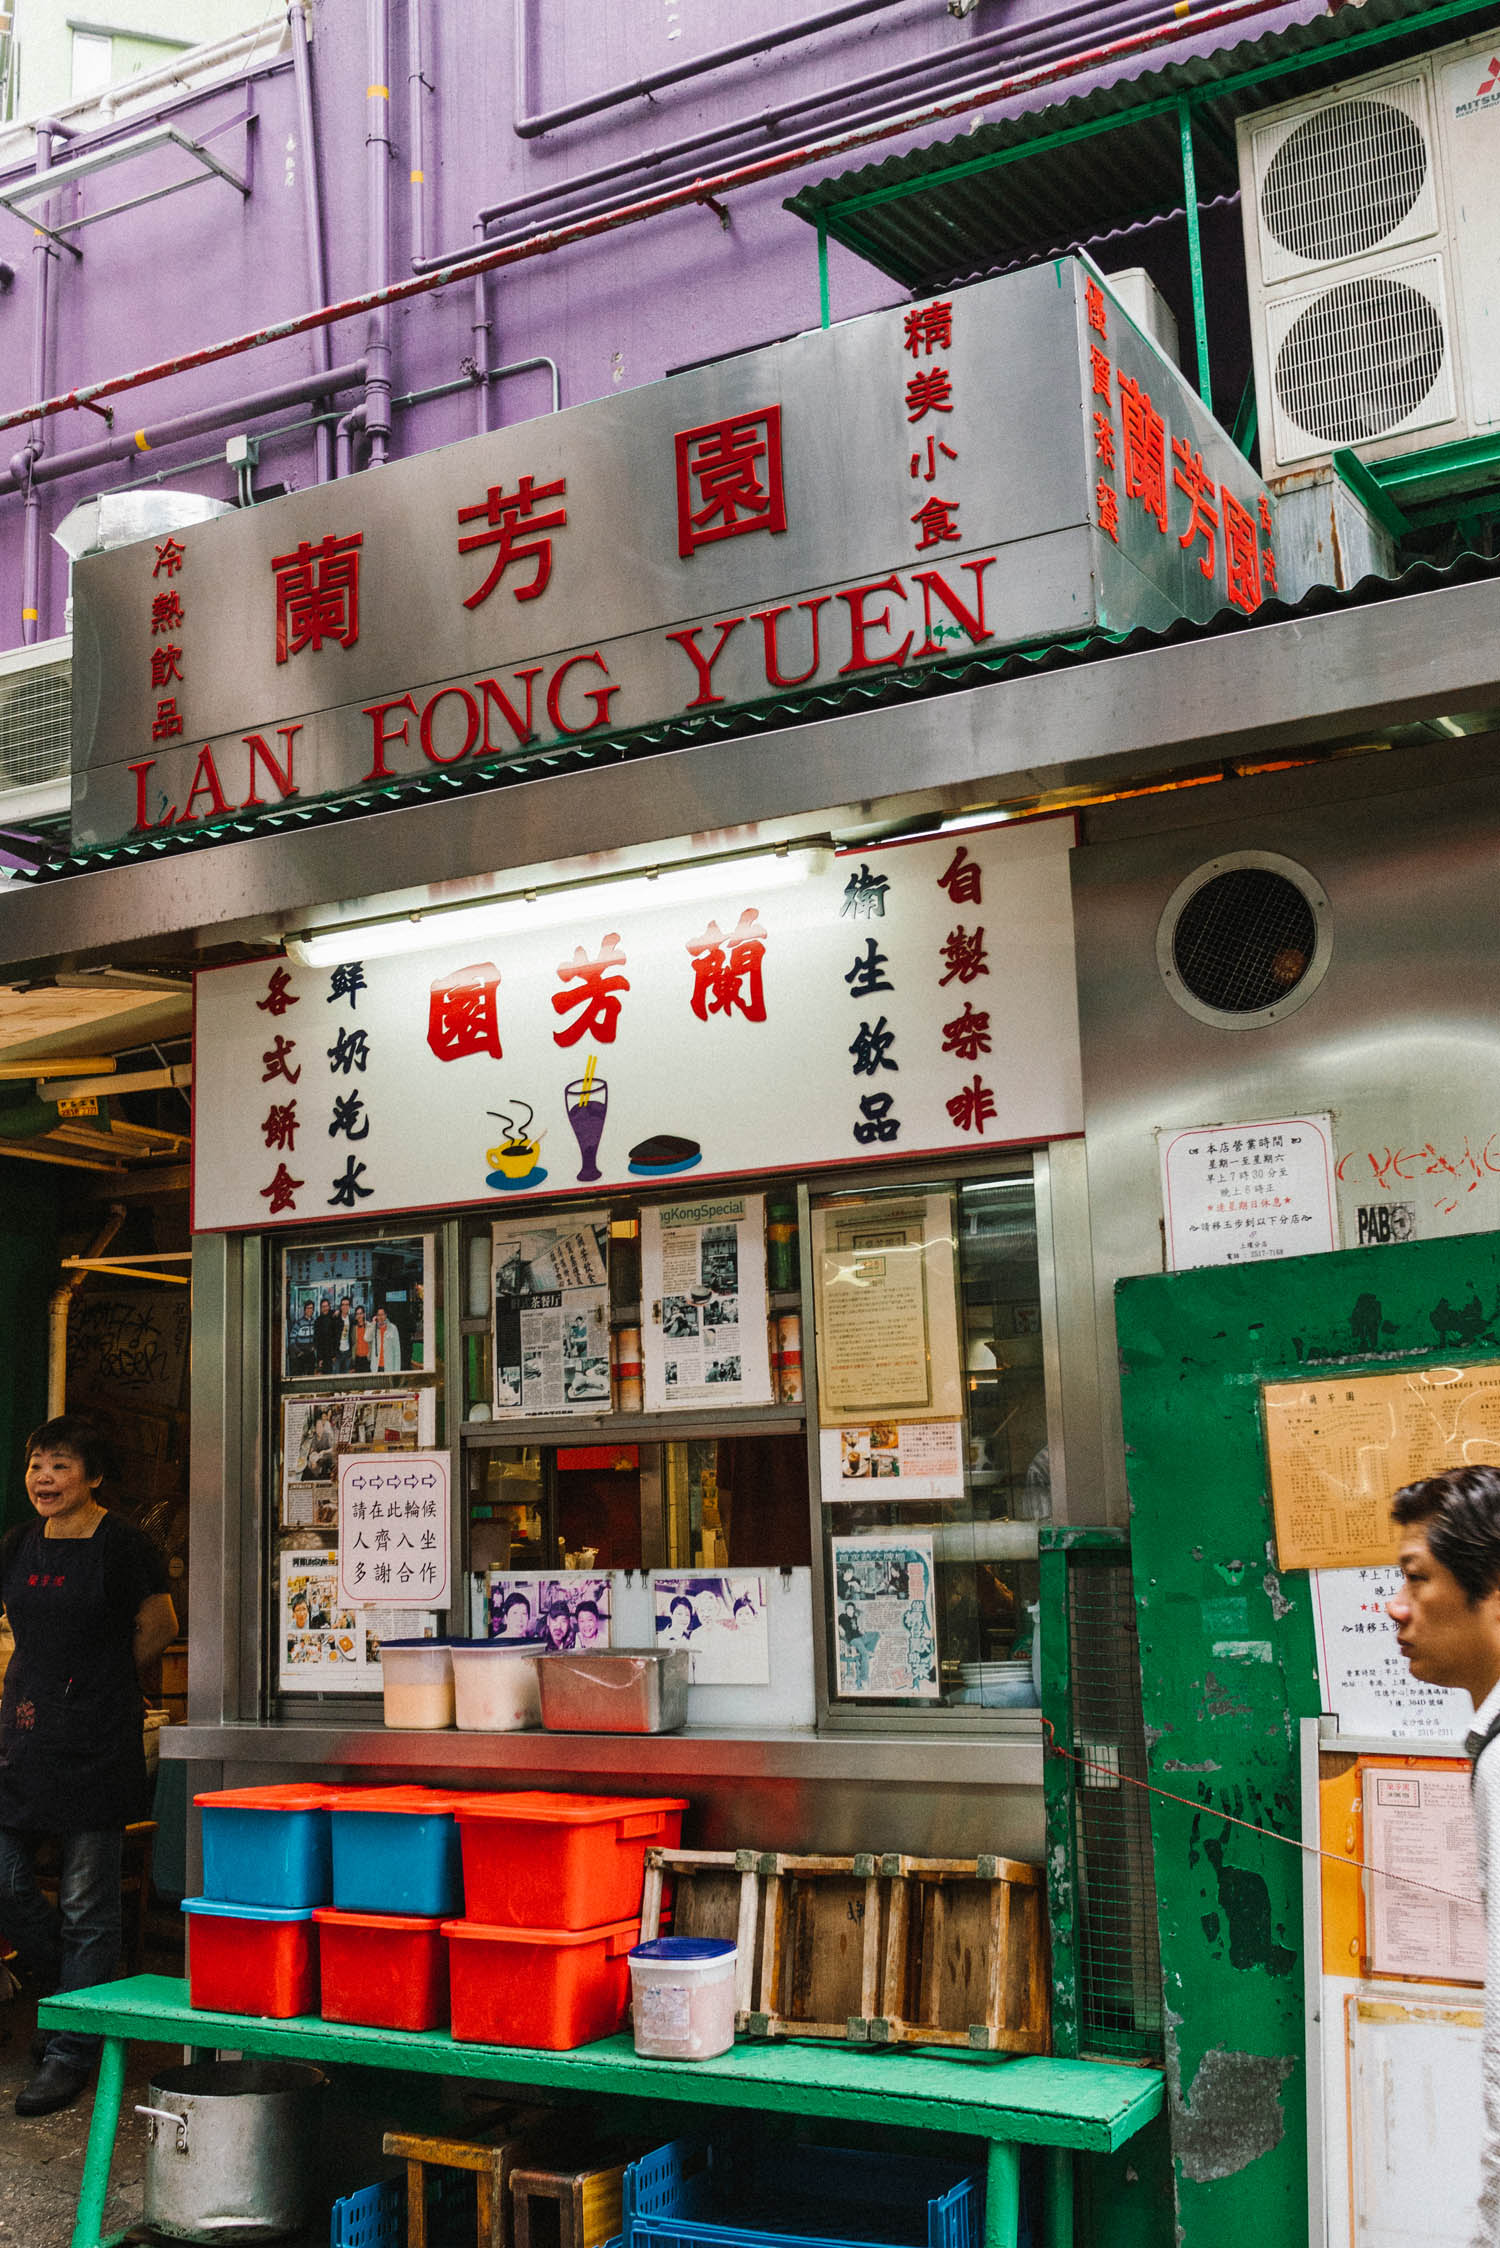 Lan Fong Yuen, where milk tea originated